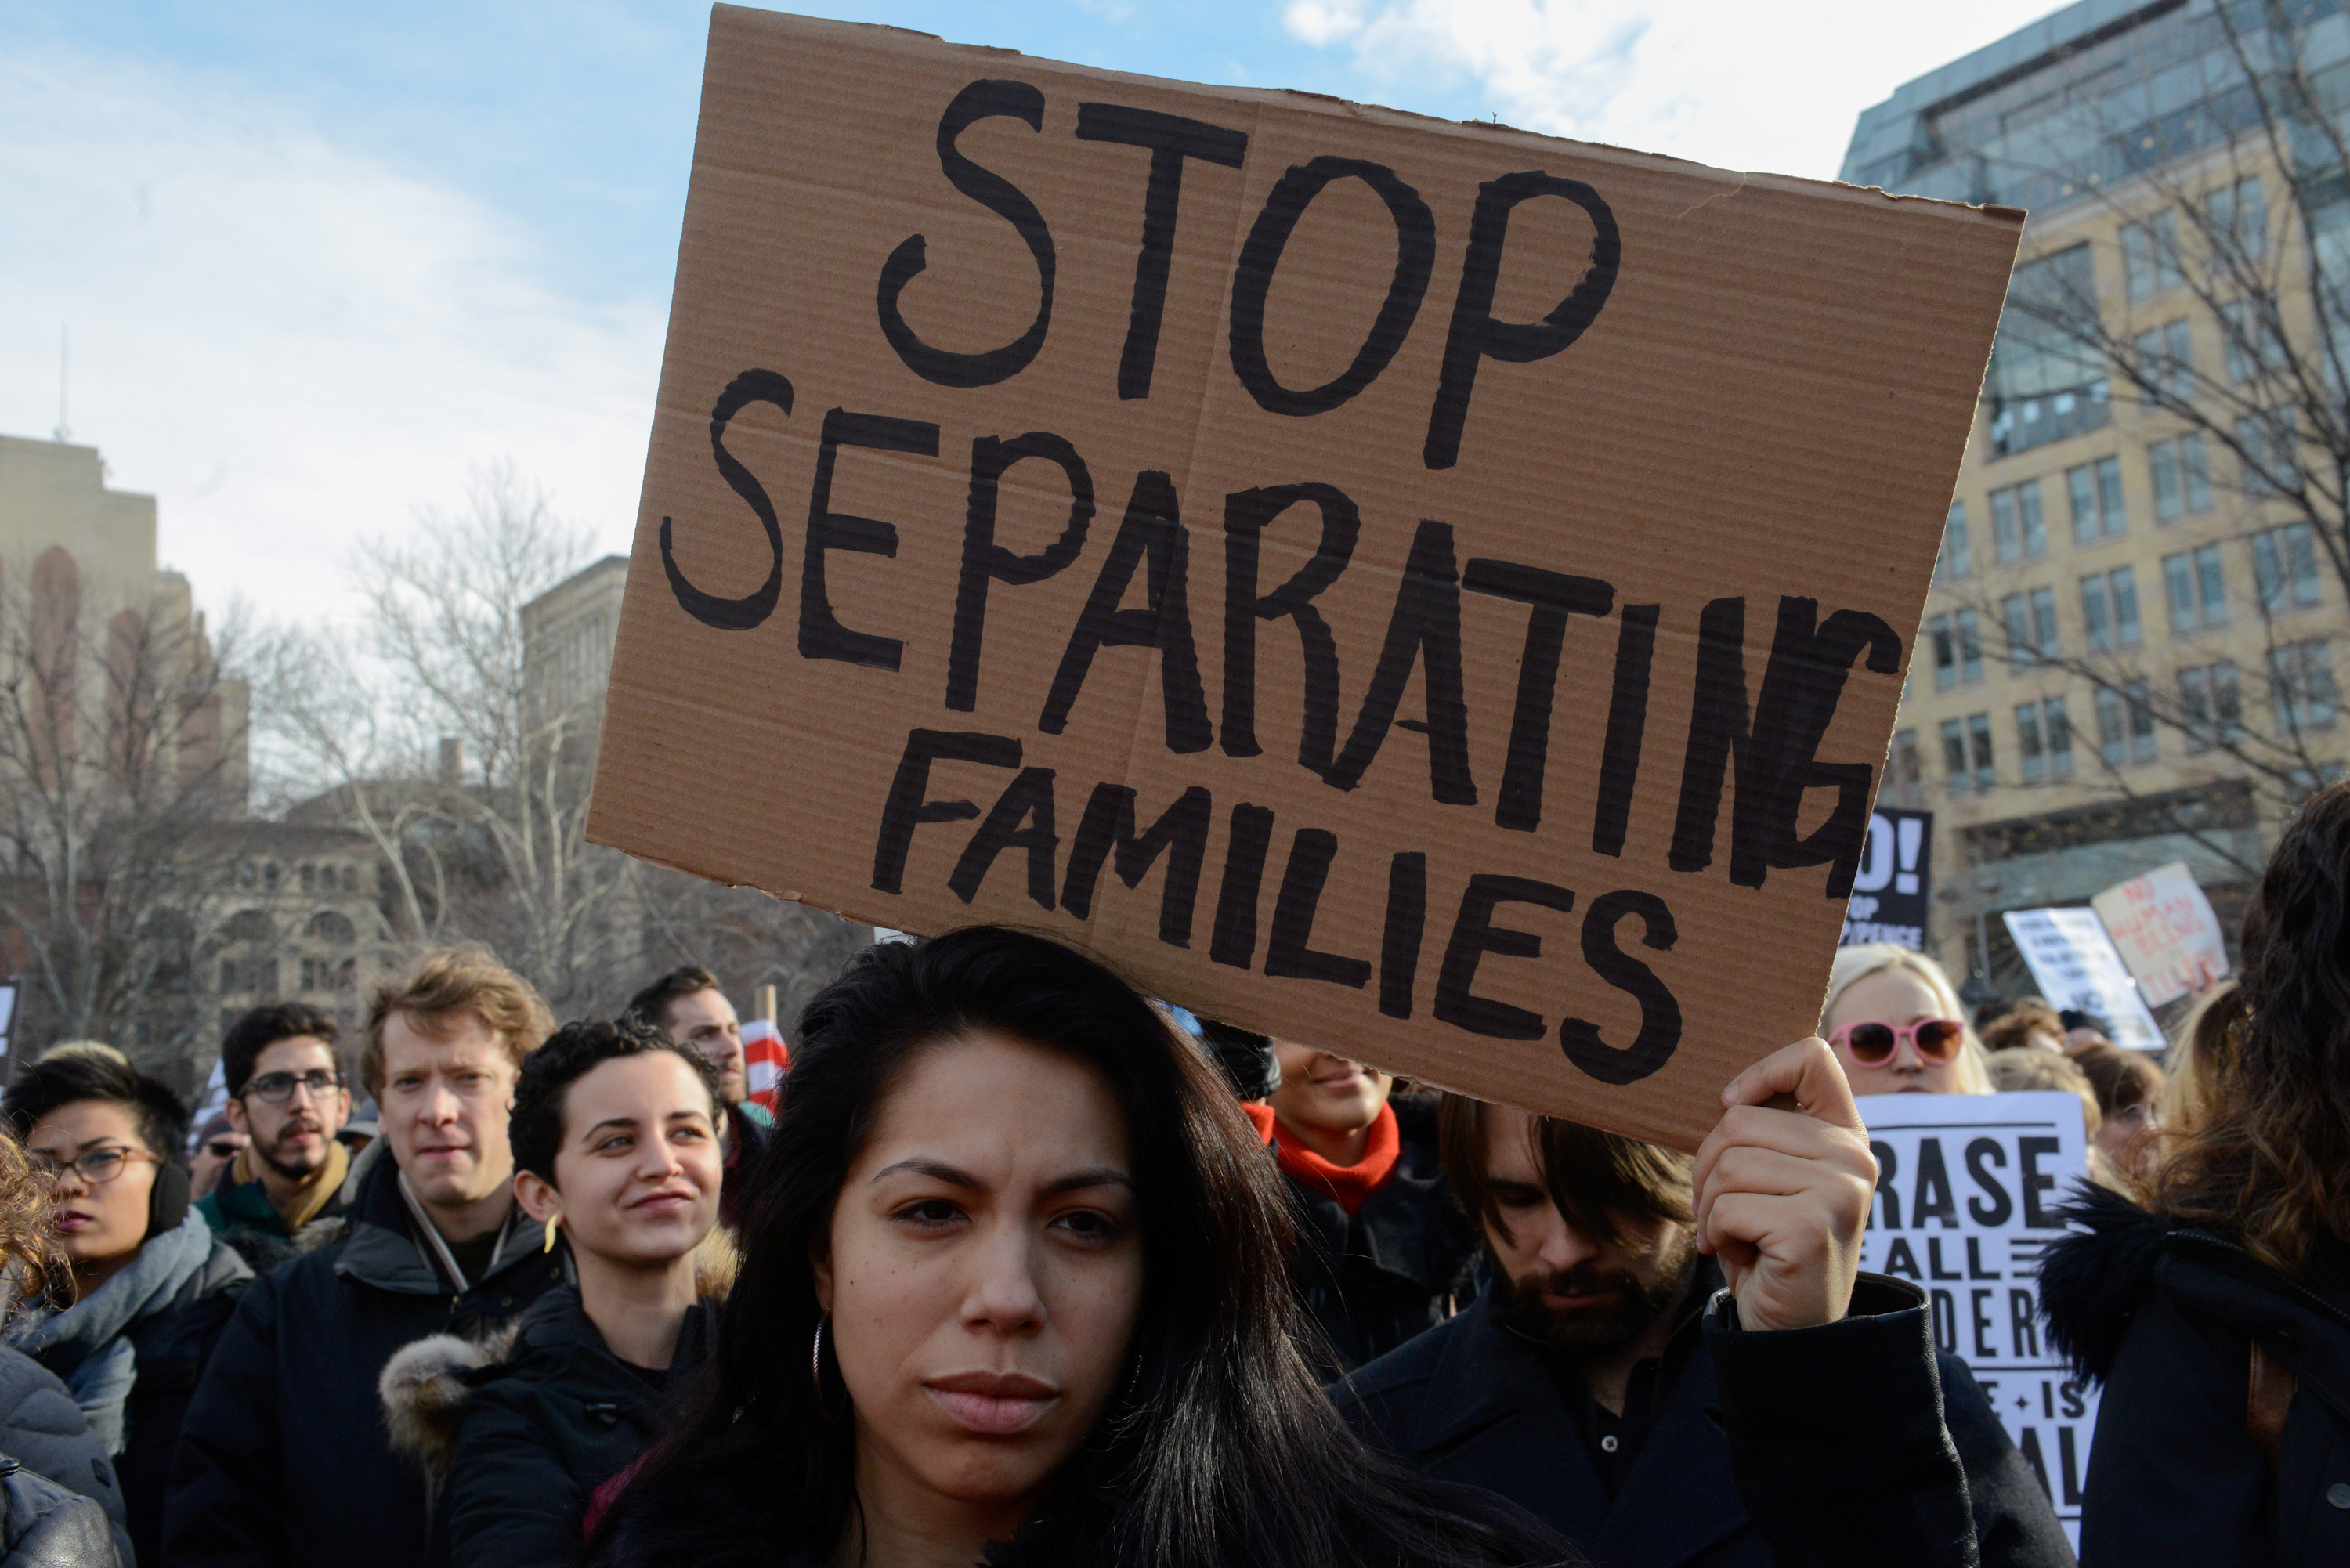 People participate in a protest against U.S. President Donald Trump's immigration policy and the recent Immigration and Customs Enforcement (ICE) raids in New York City, Feb. 11, 2017.